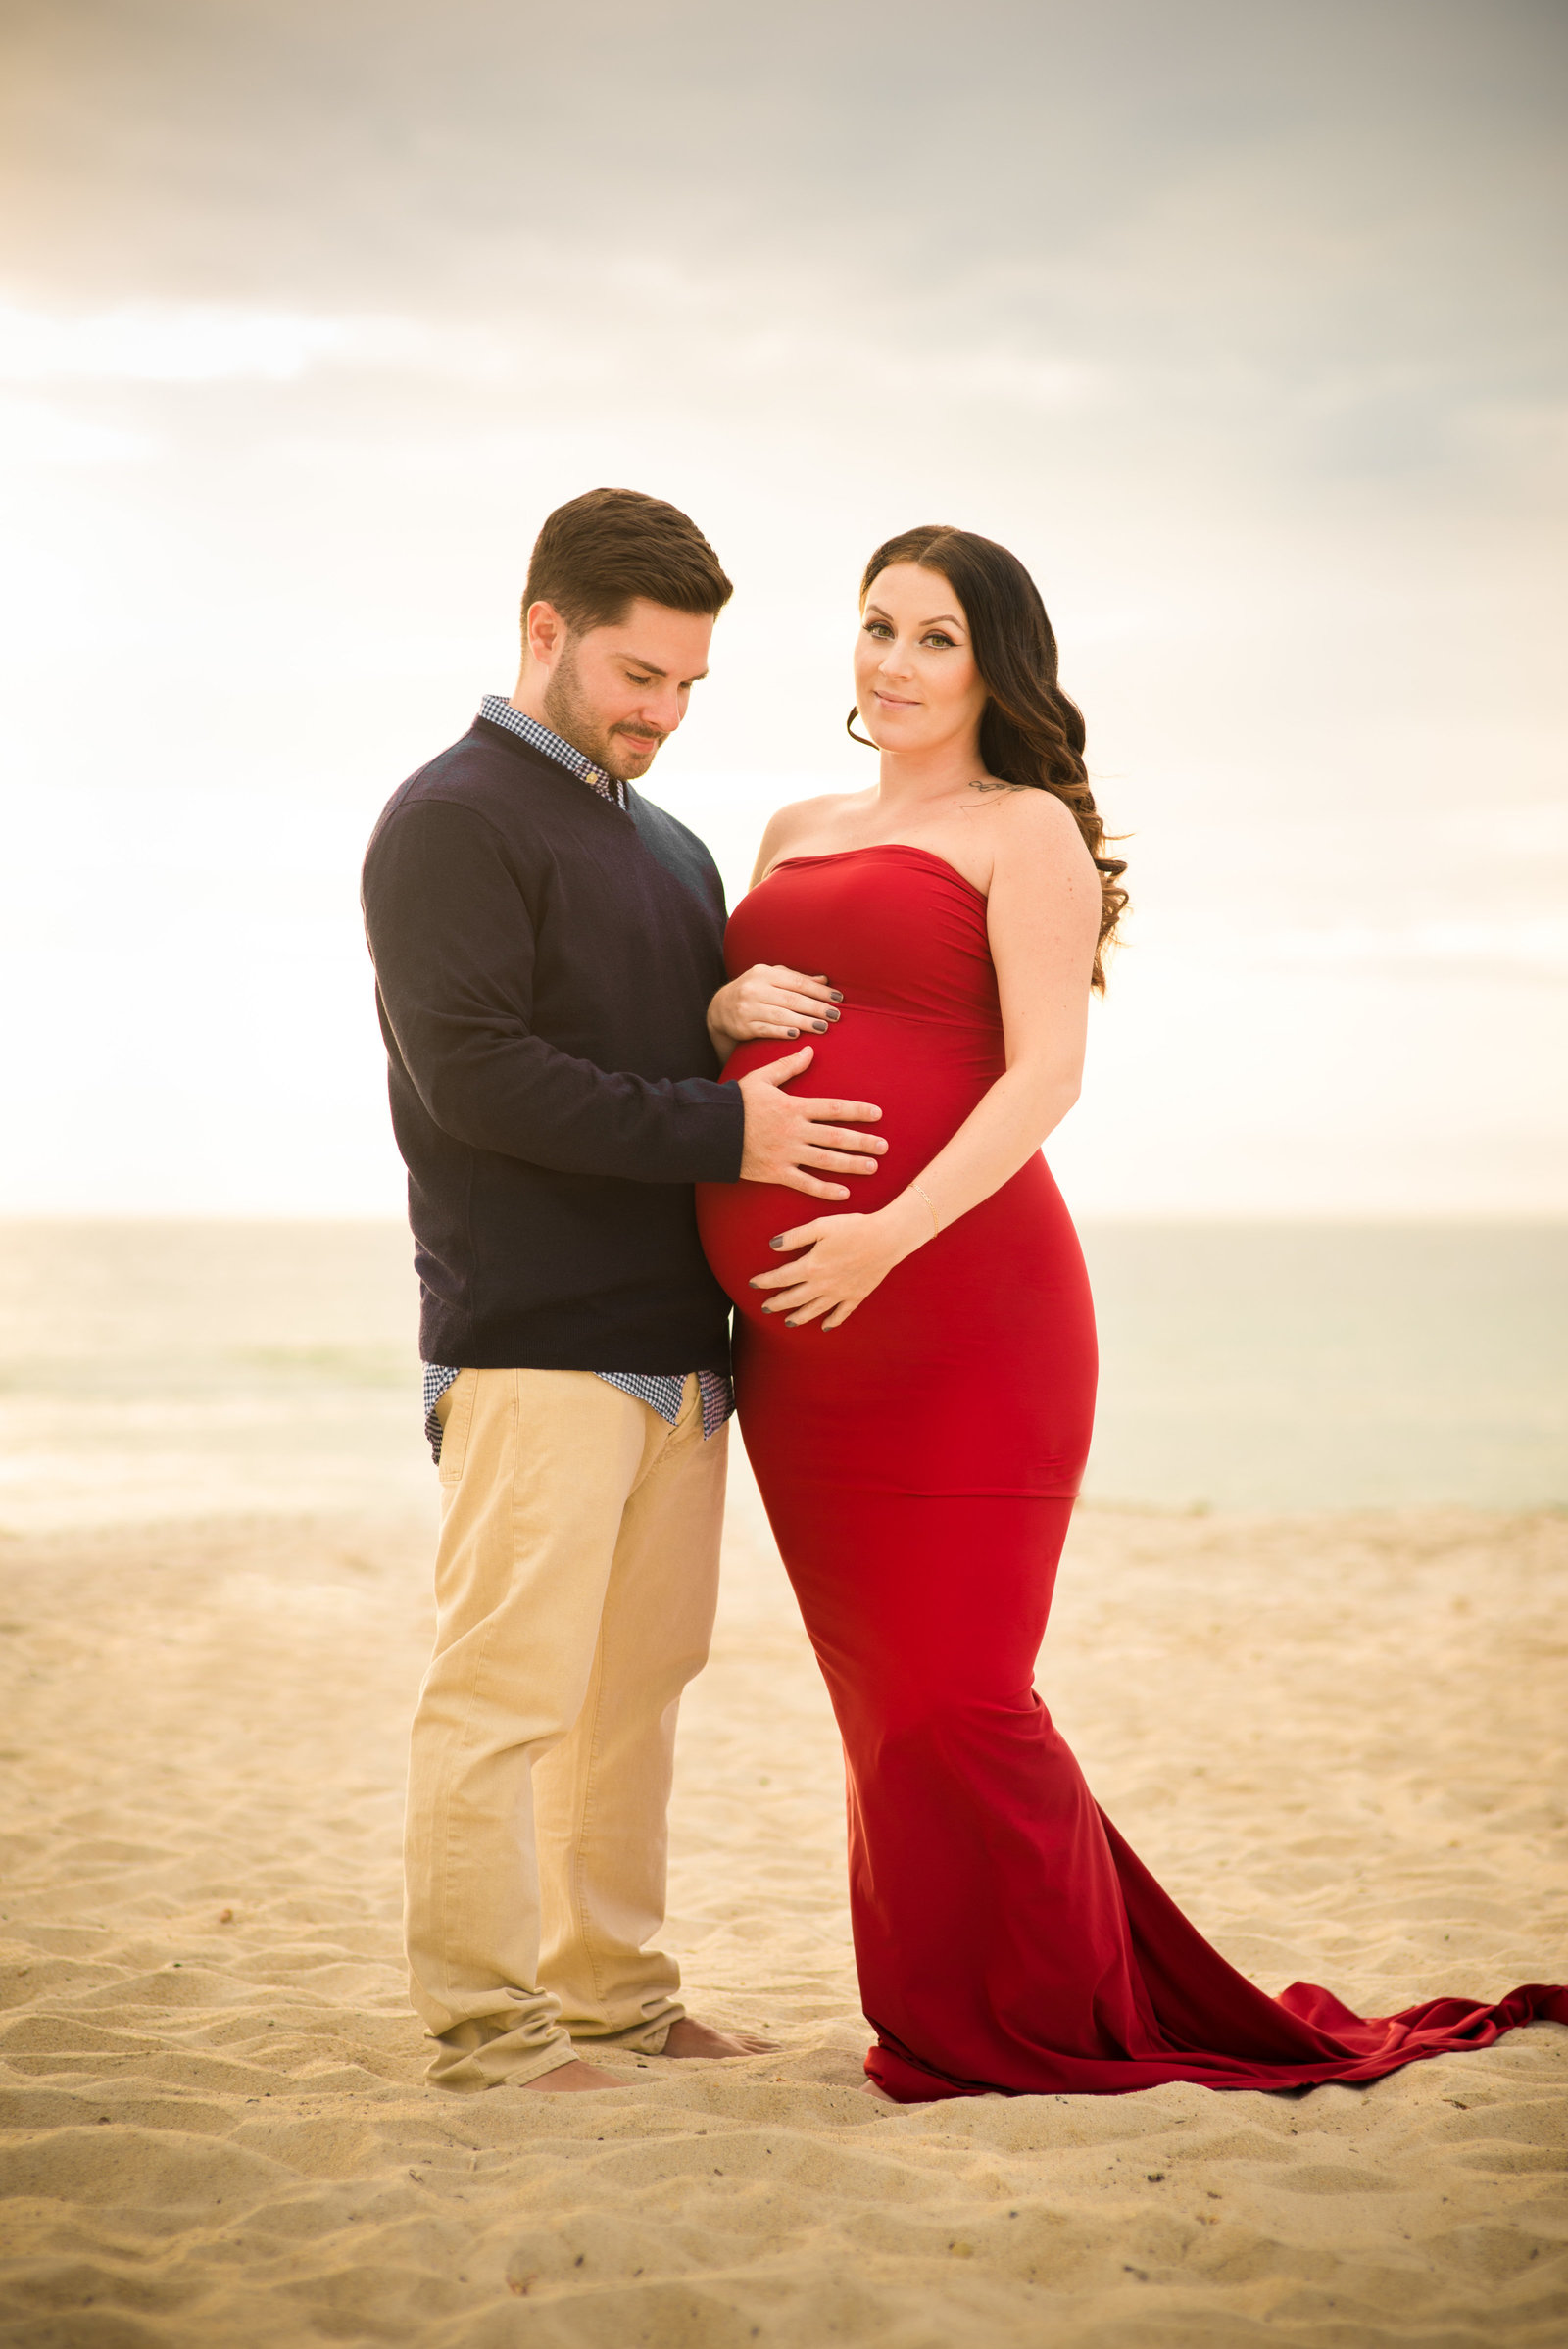 Lp_photostudio_Maternity